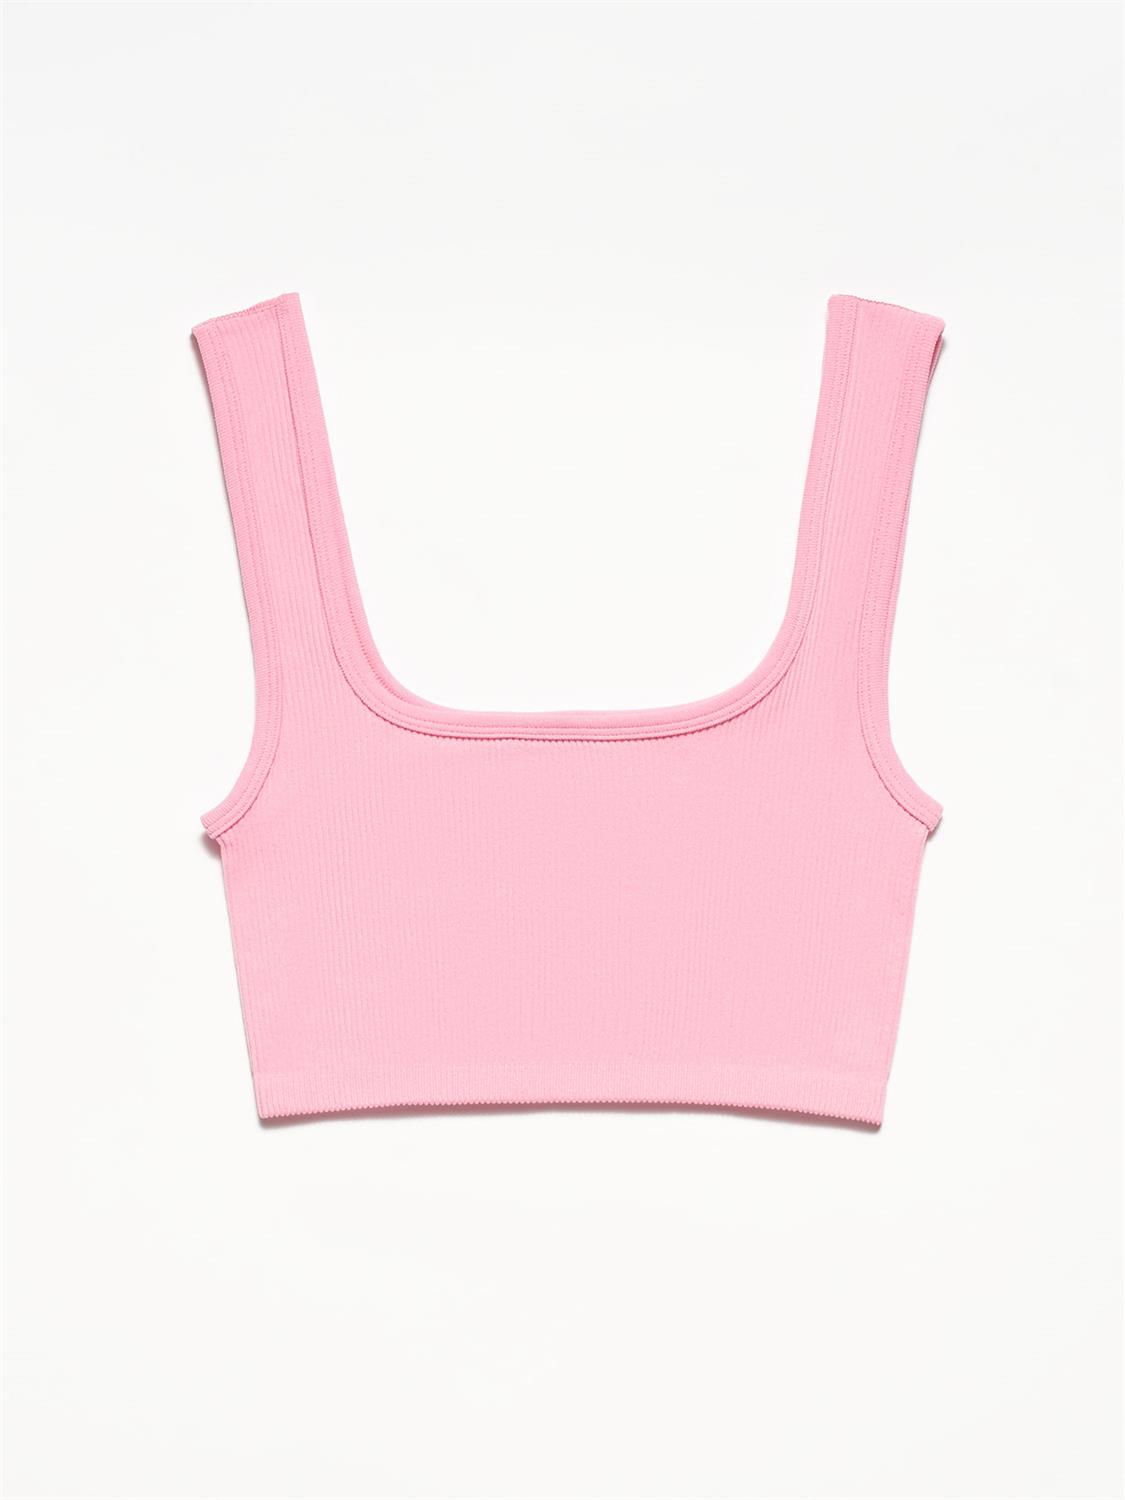 3673 Crop Top-Açık Pembe